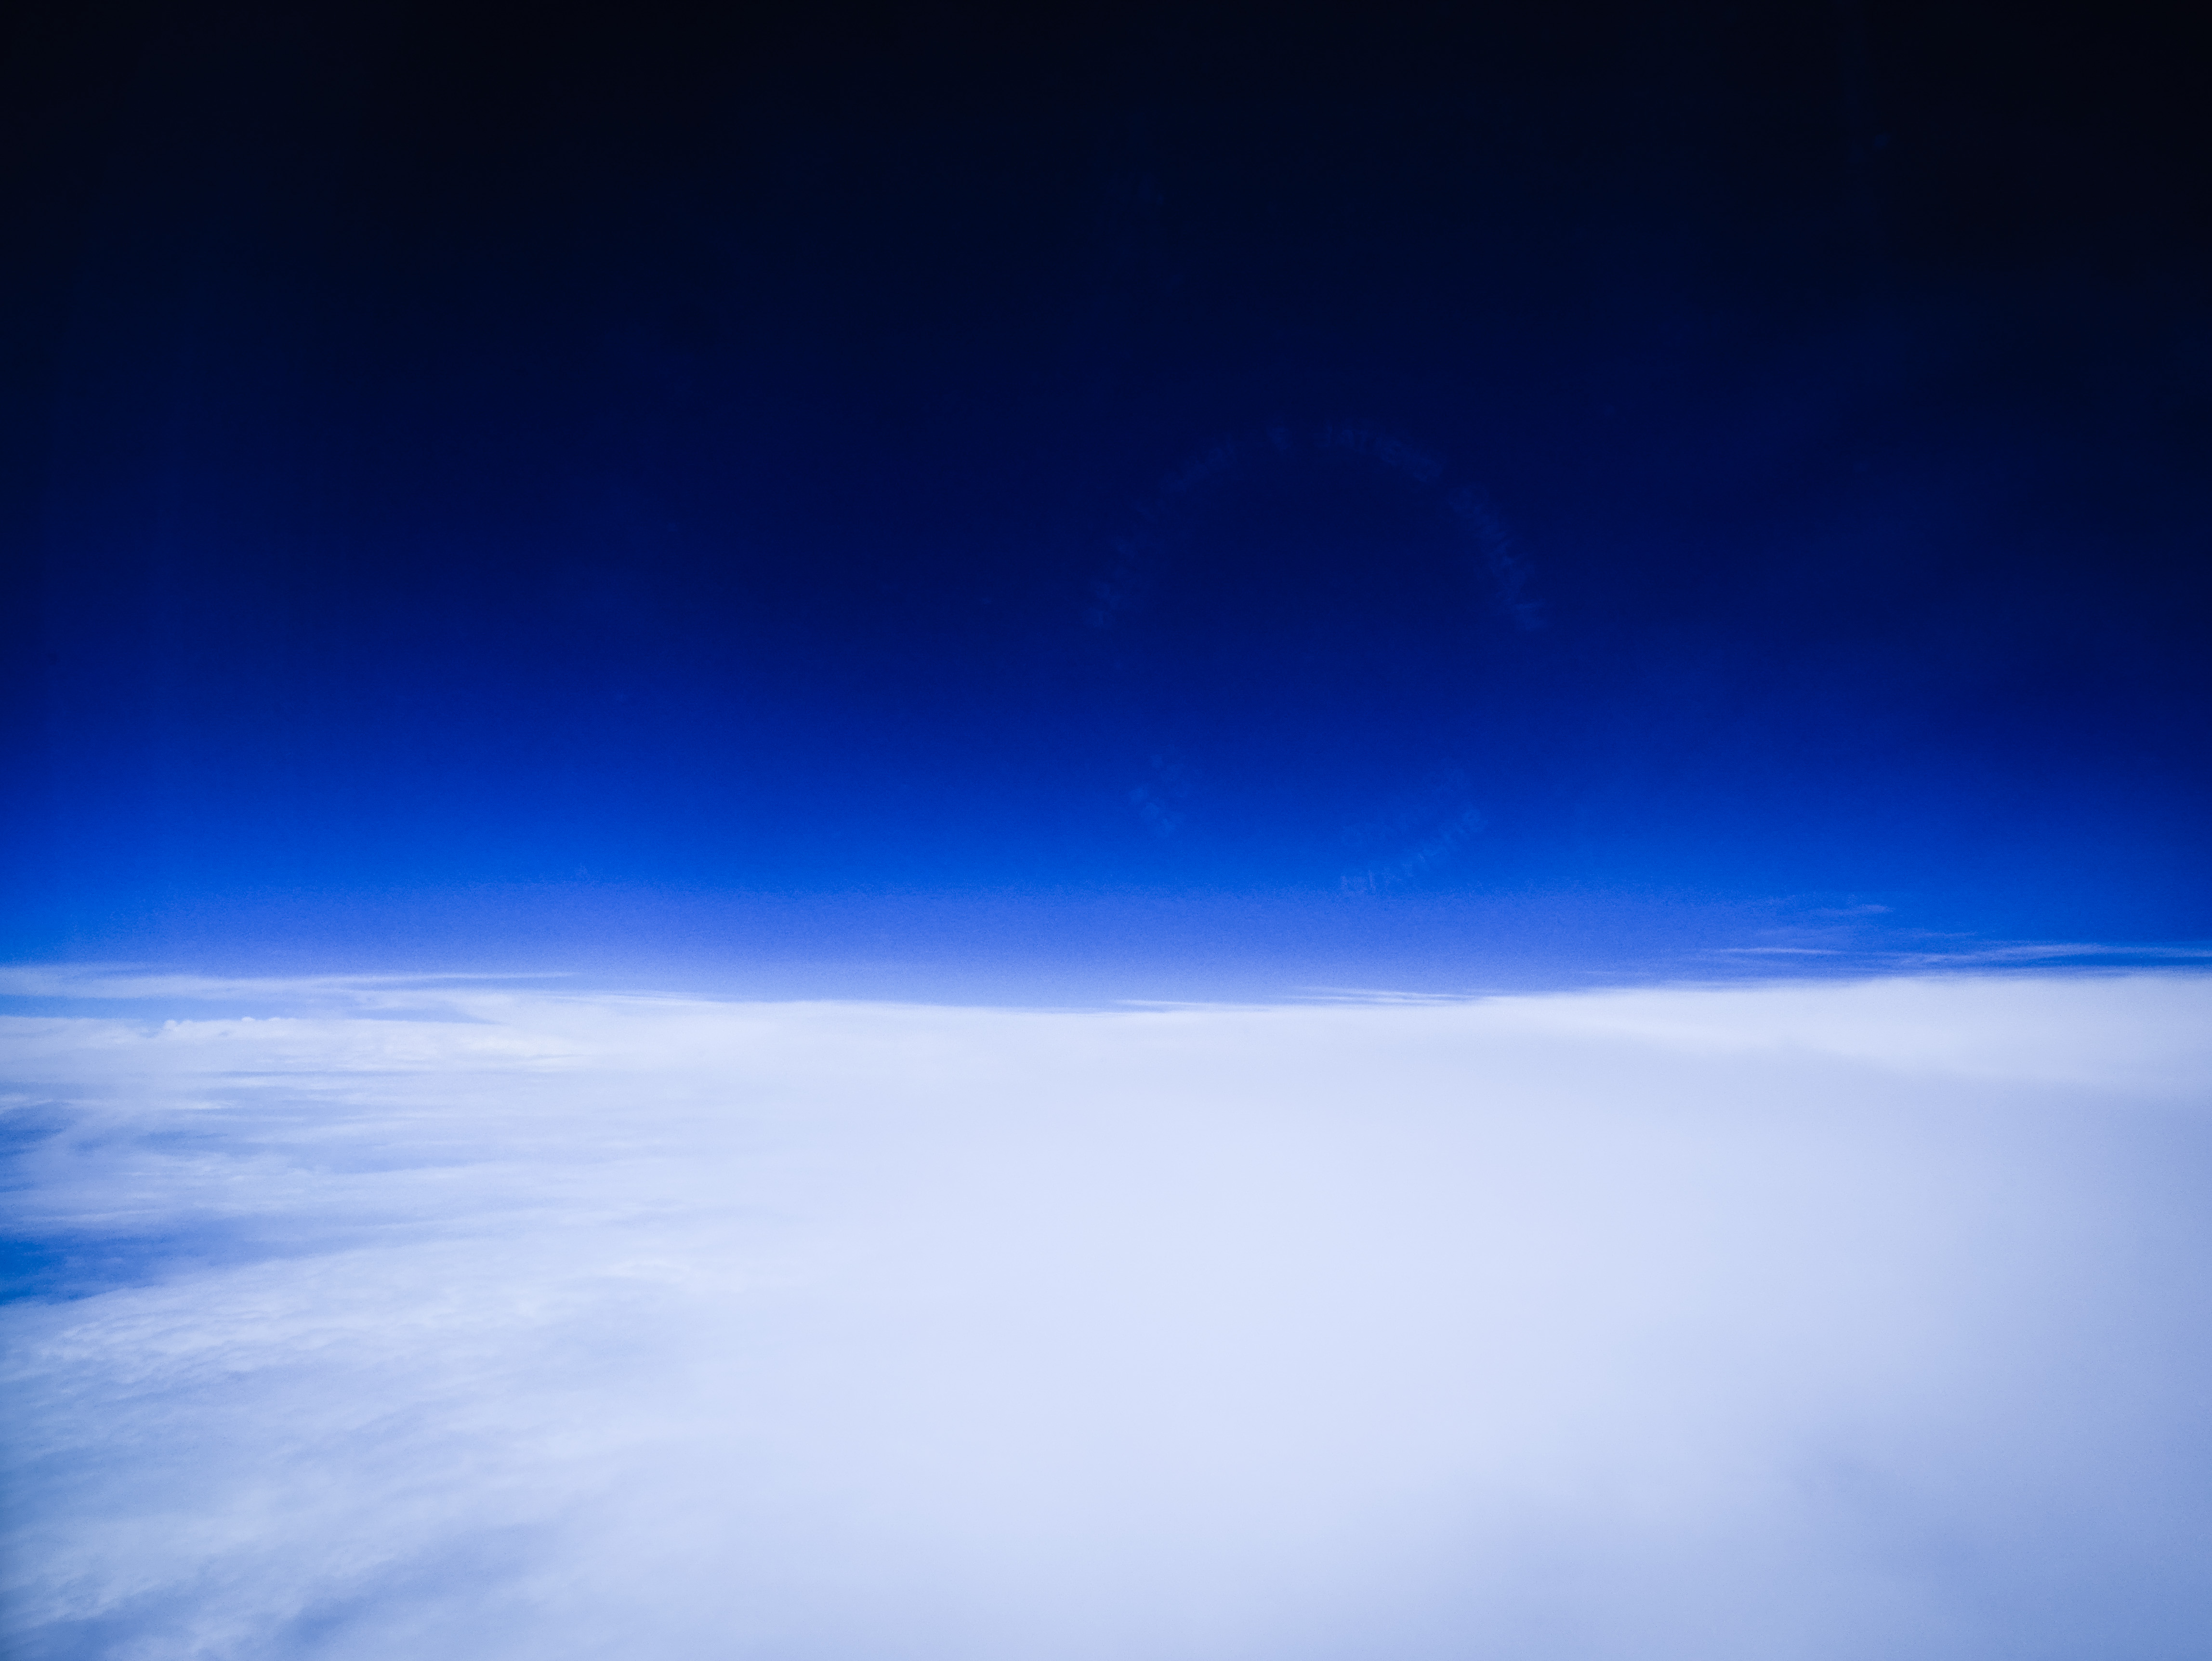 sea of cloud in to the blue